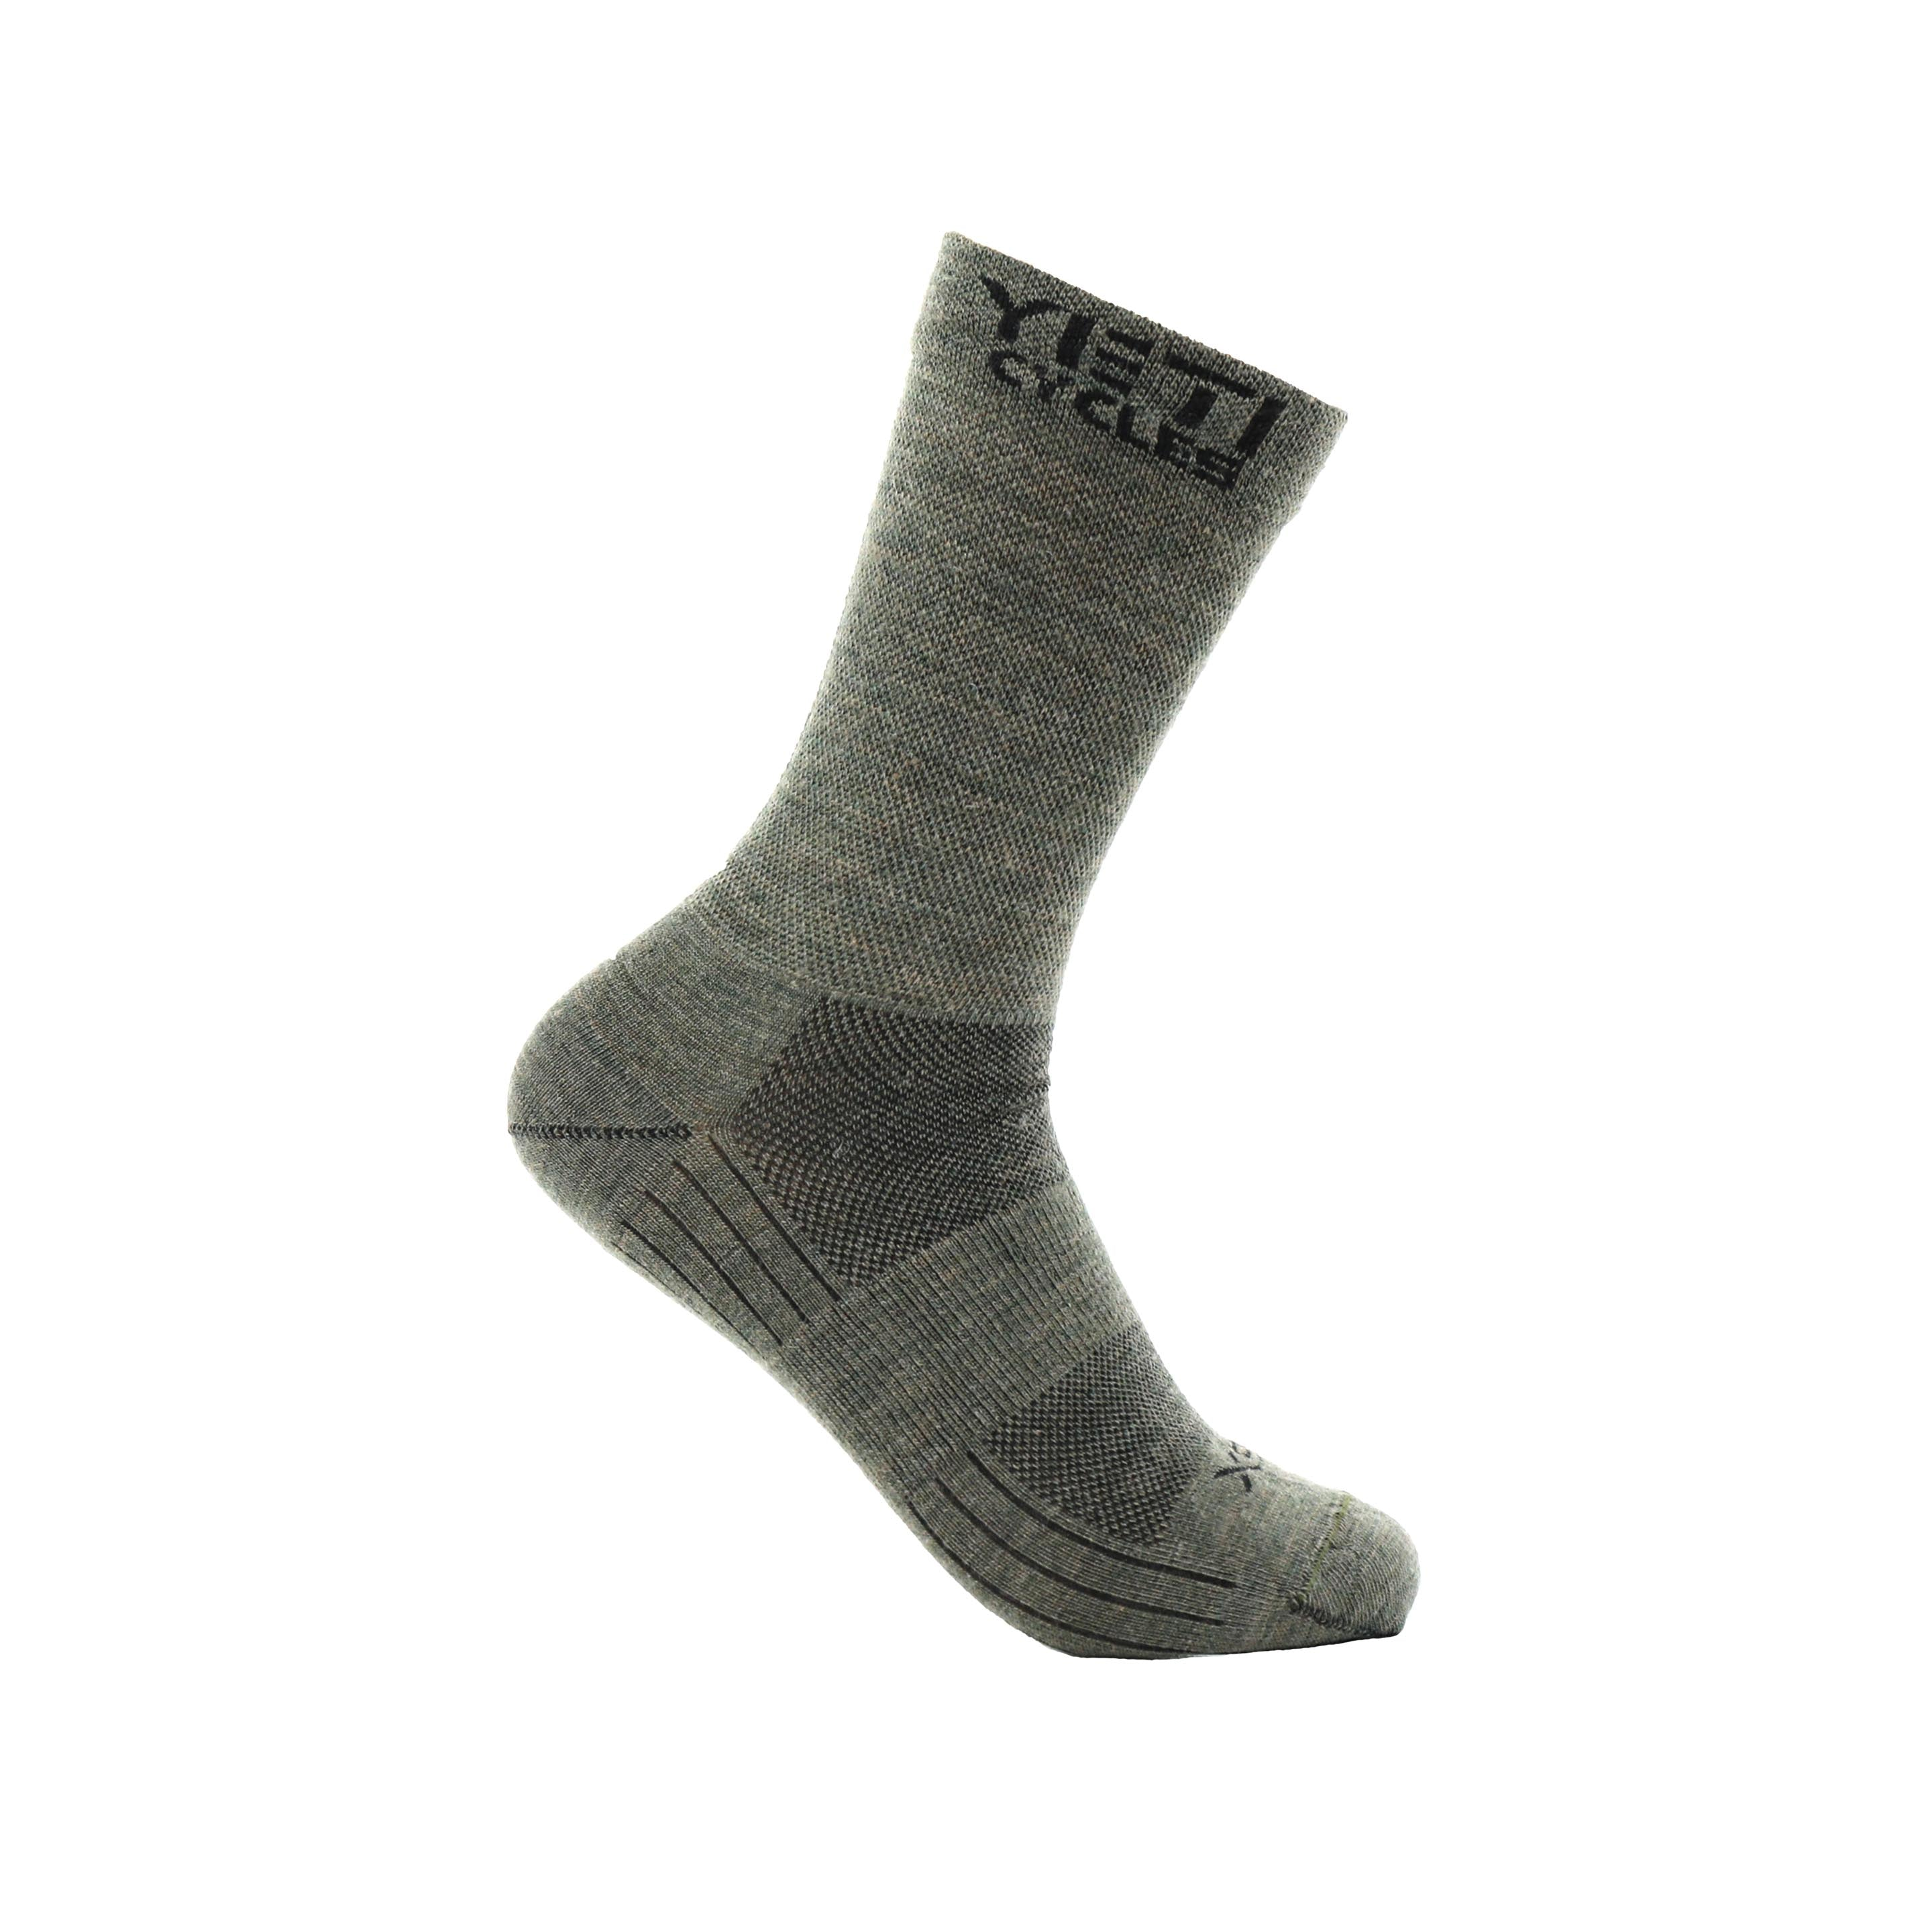 YETI CYCLES WOOL TRAIL SOCK MOSS SM/MD